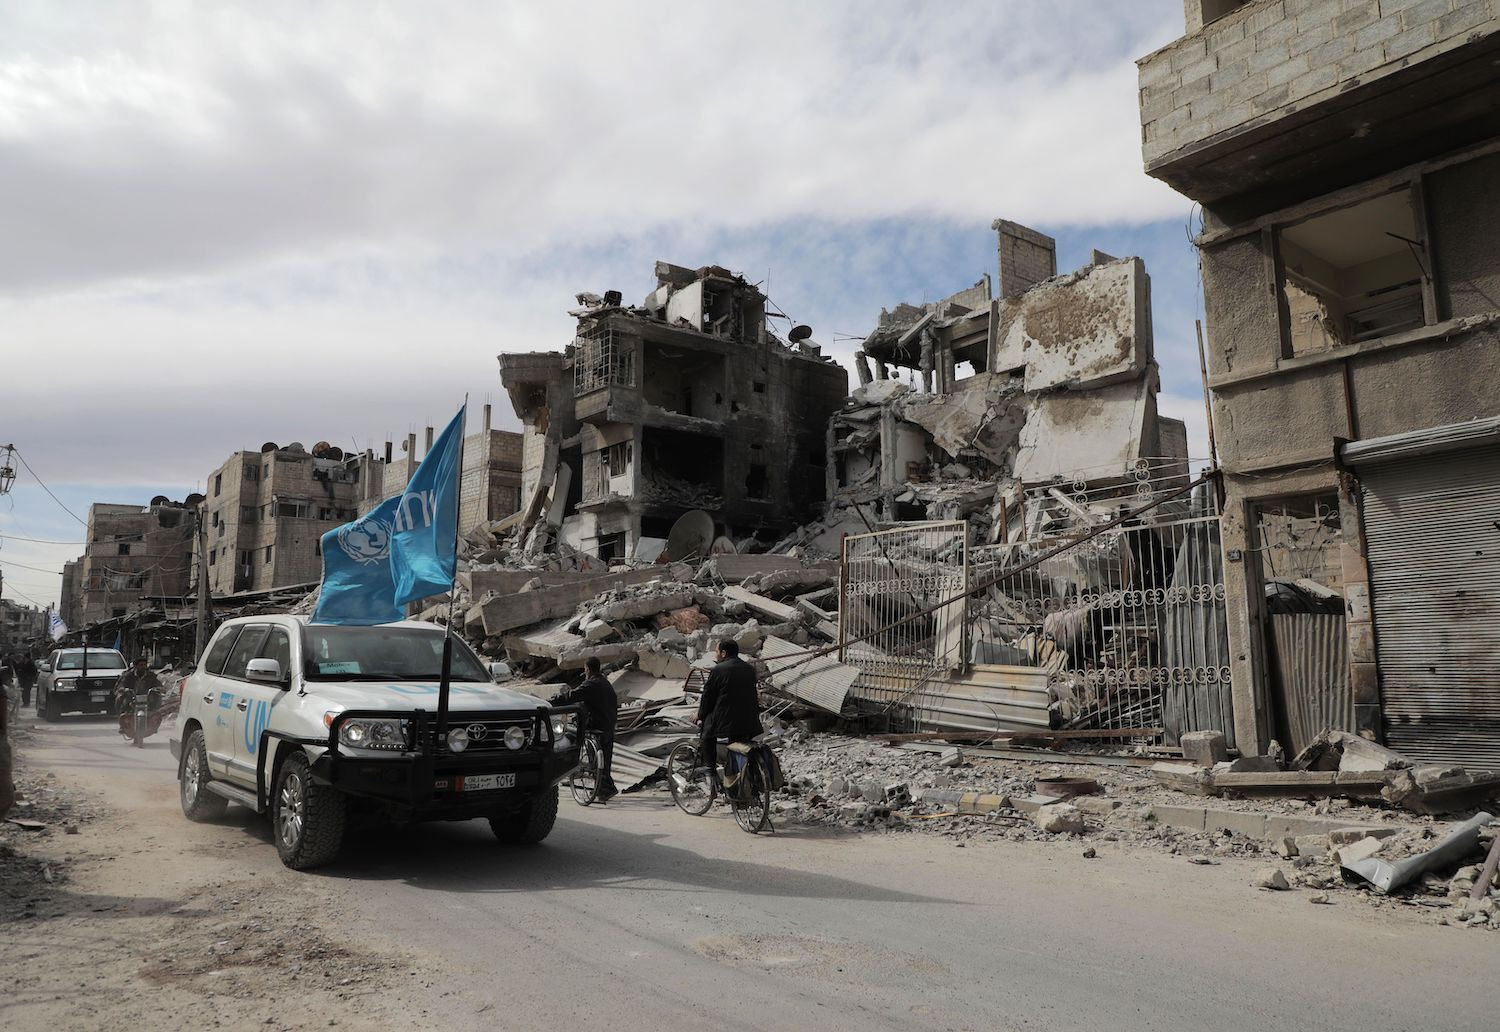 Russia, With An Eye On The Syrian Prize, Blocks Humanitarian Aid